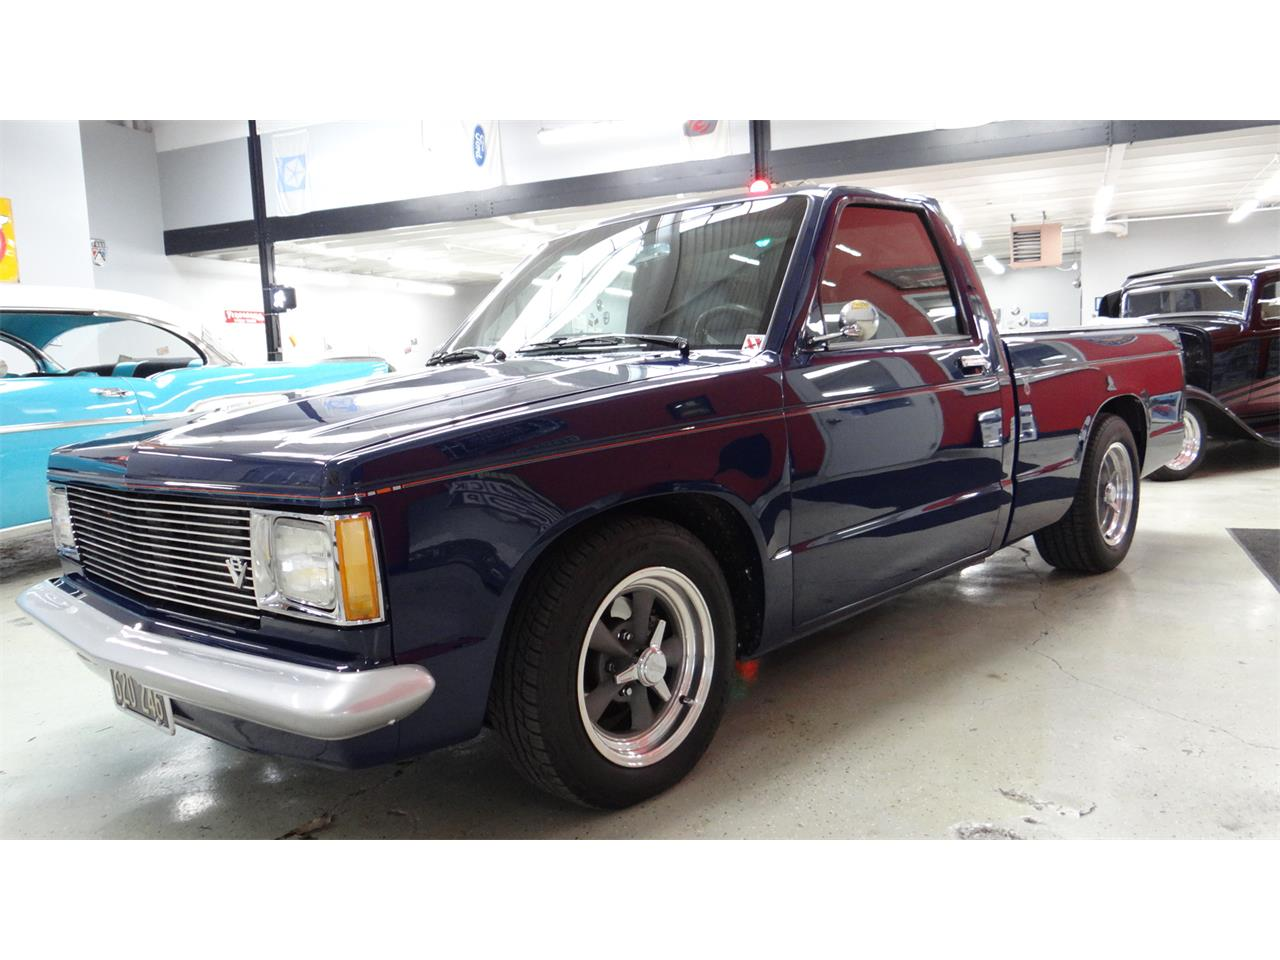 1986 Chevrolet S10 for sale in Davenport, IA – photo 3